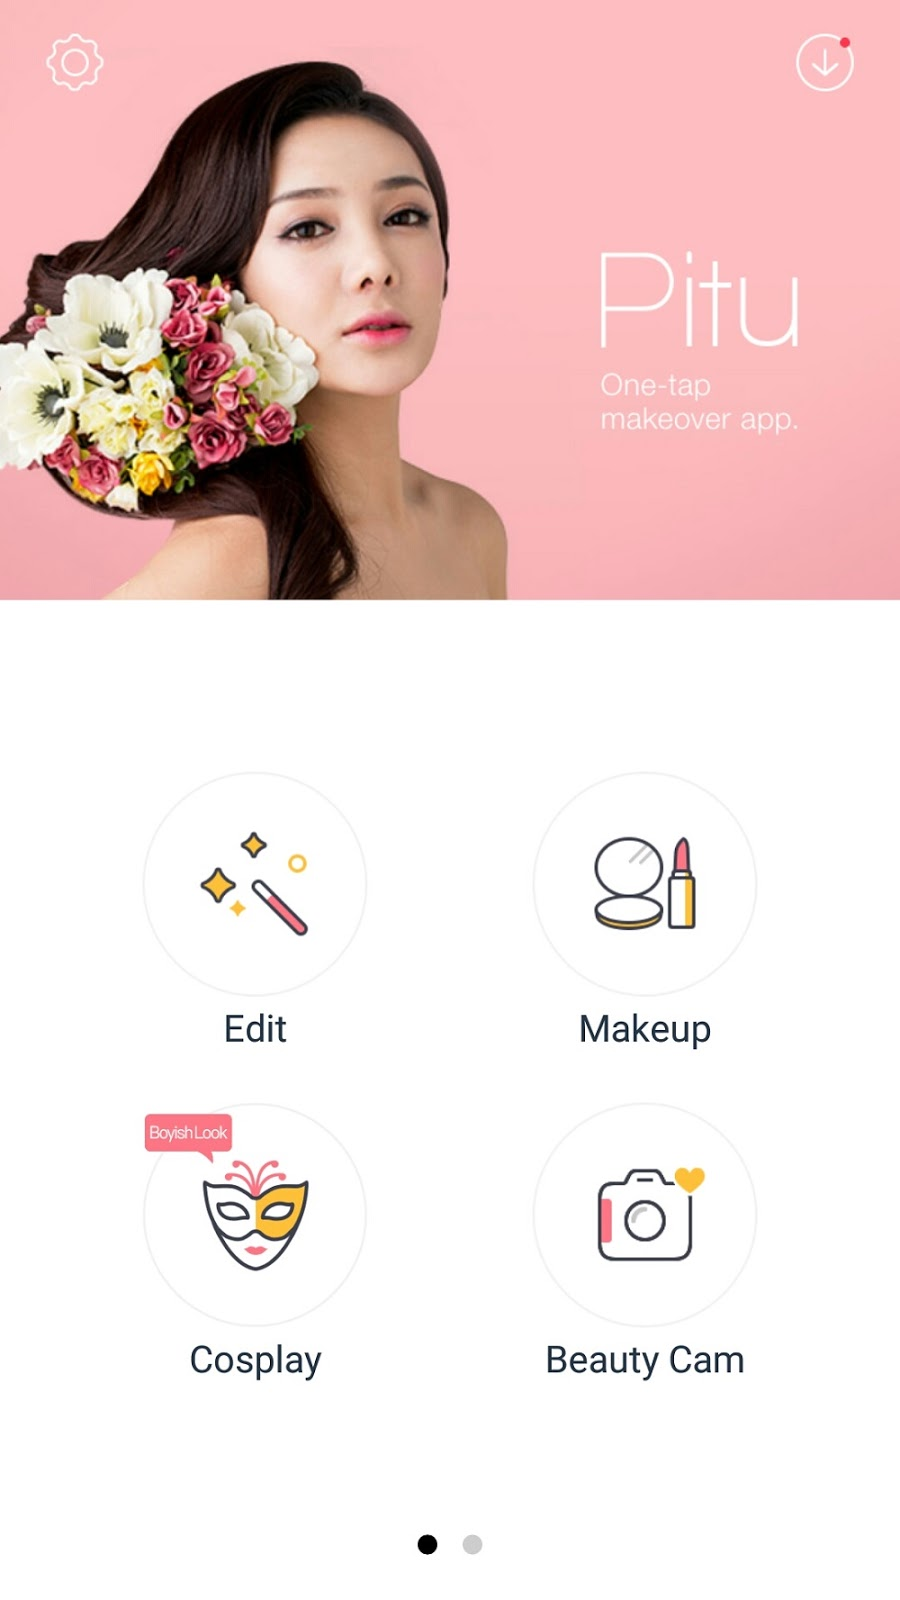 Pitu Makeover Editing app, selfie app, photo editing app, app review